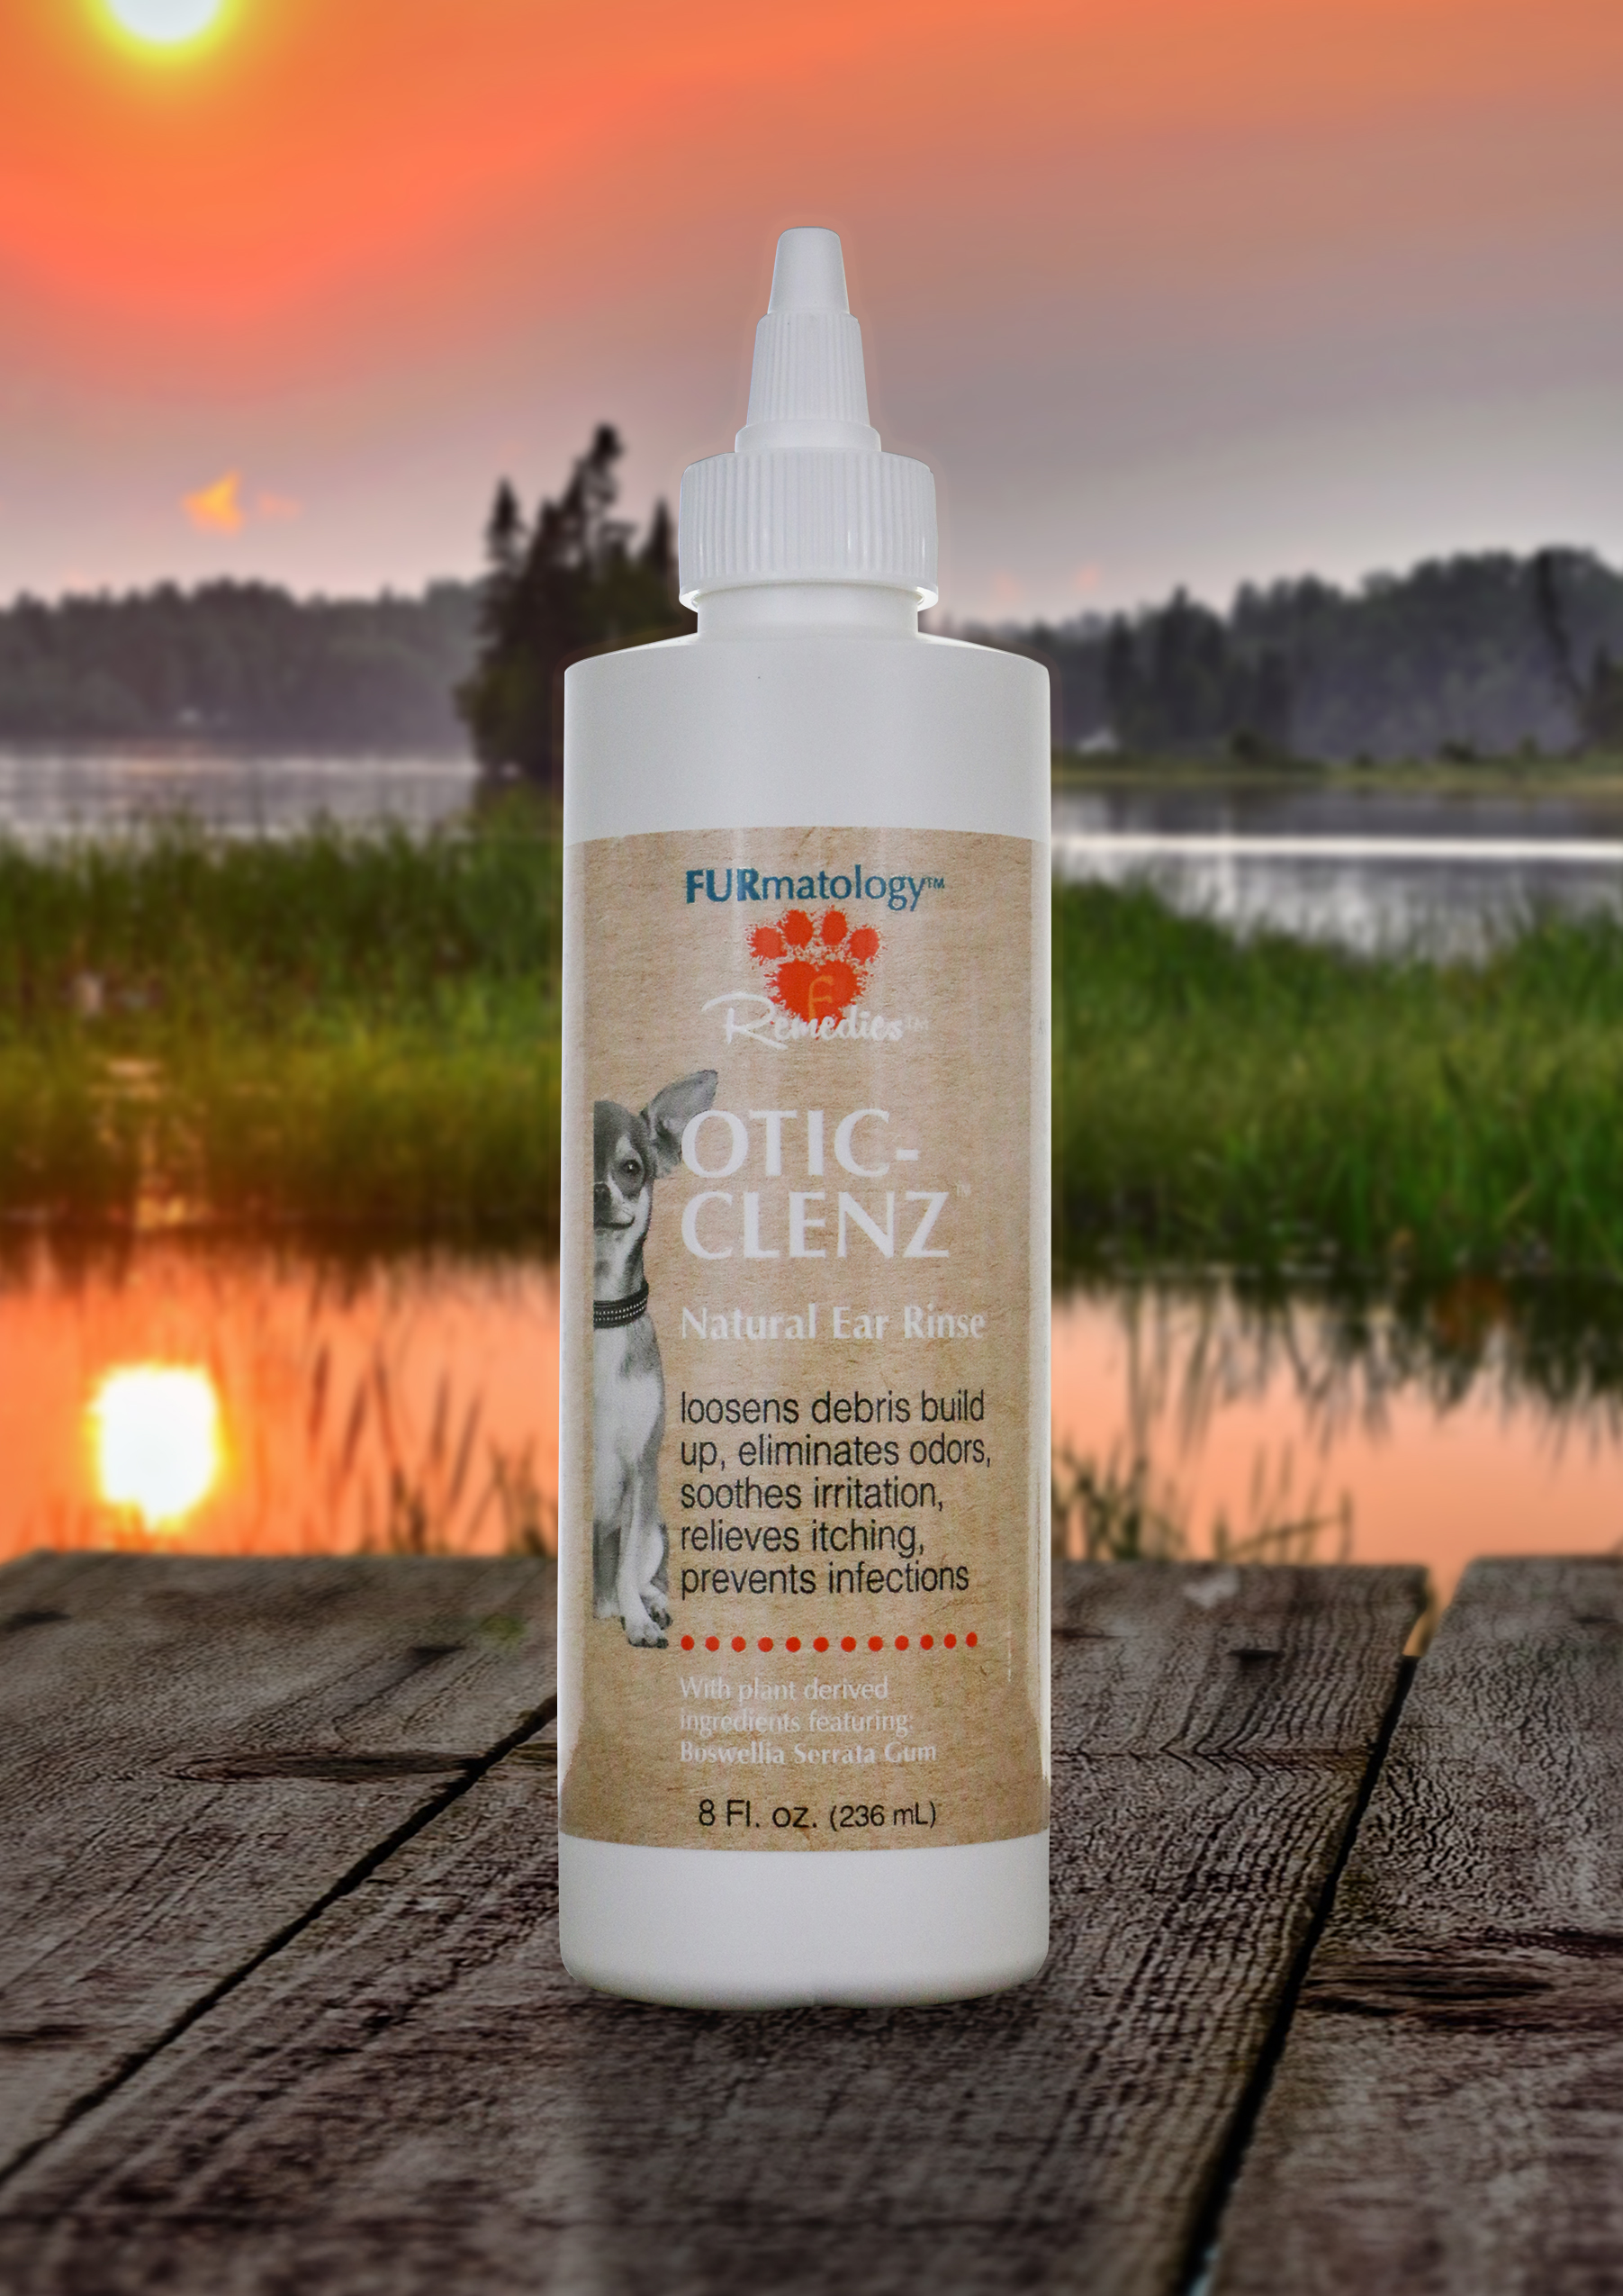 FURmatology OTIC-CLENZ Natural Ear Rinse